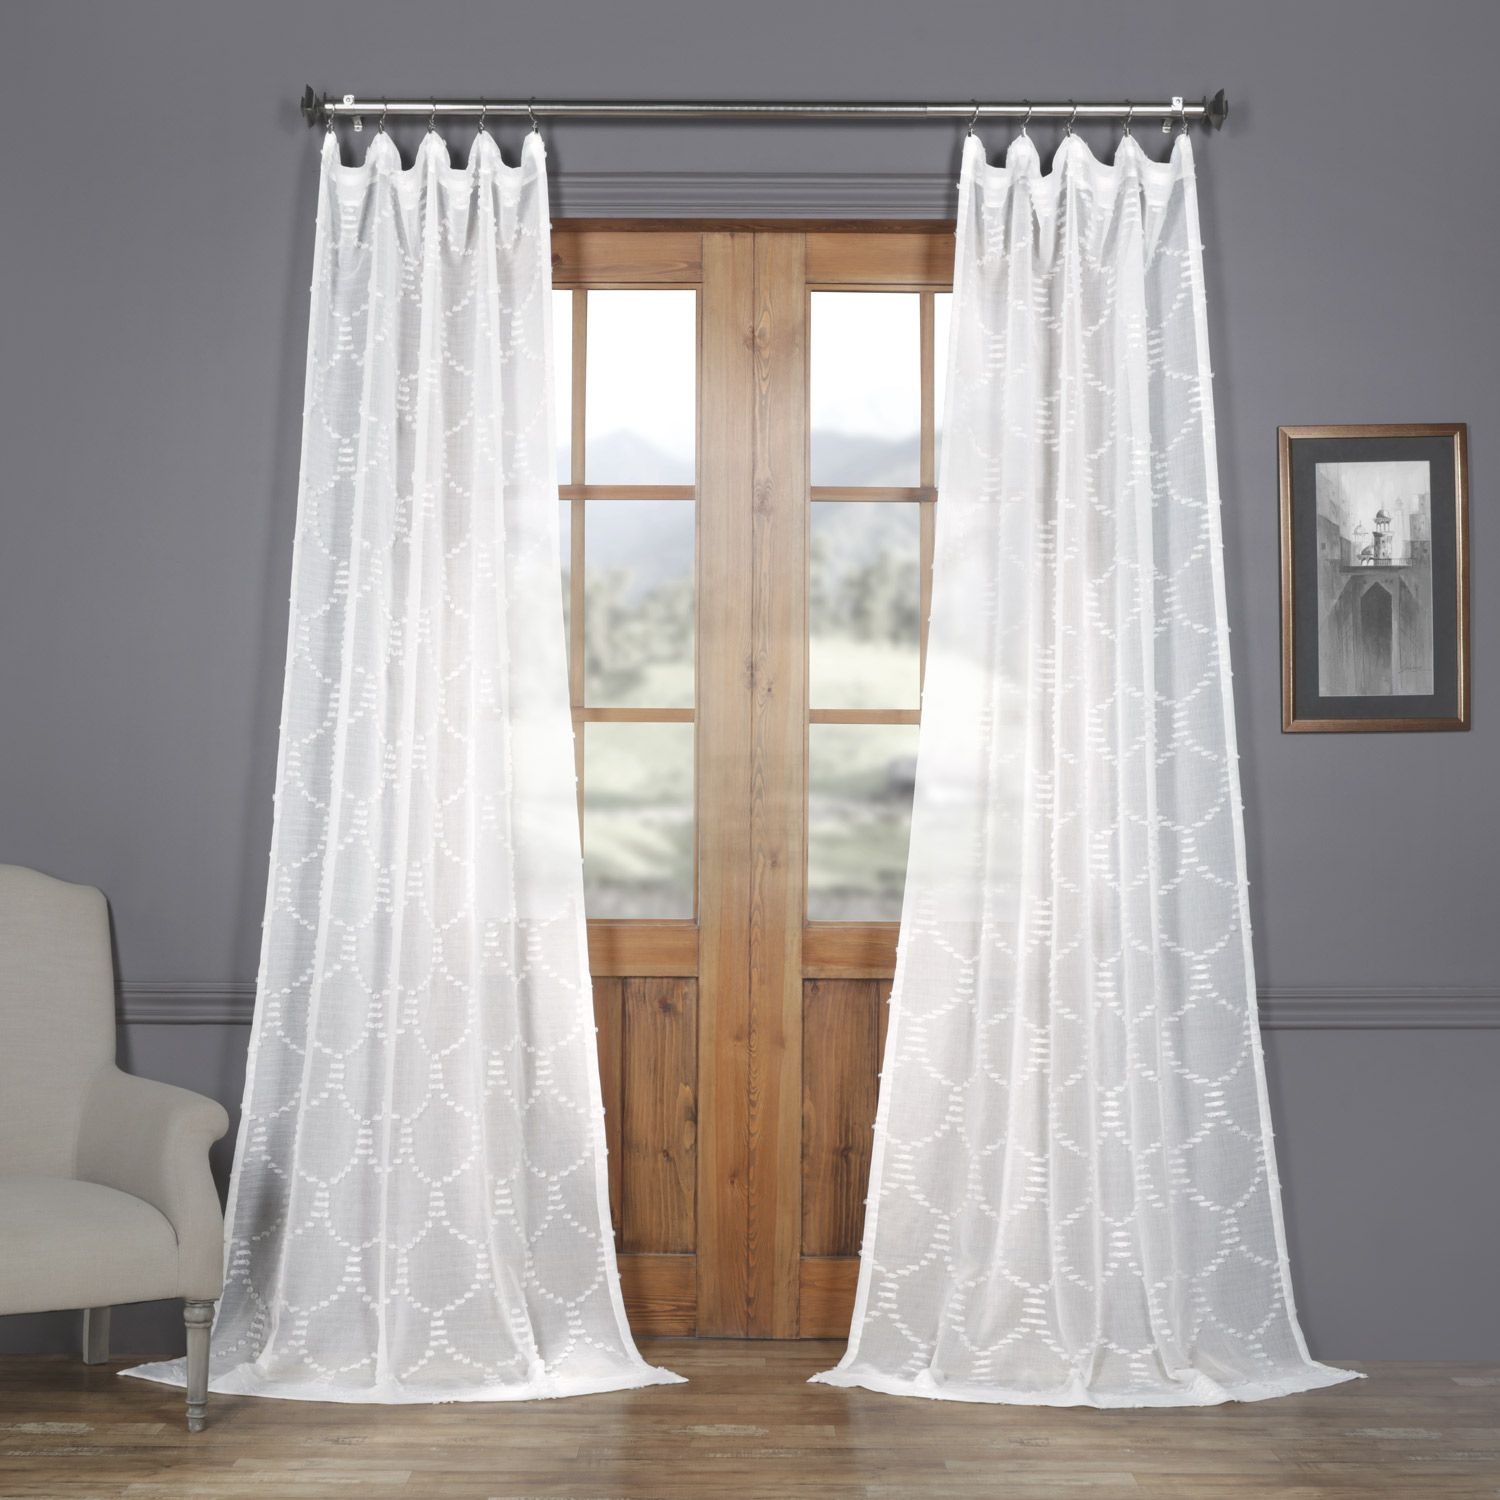 beautiful sheers curtains jcpenney drapes pinch elegant pleated sears panels sheer window banota